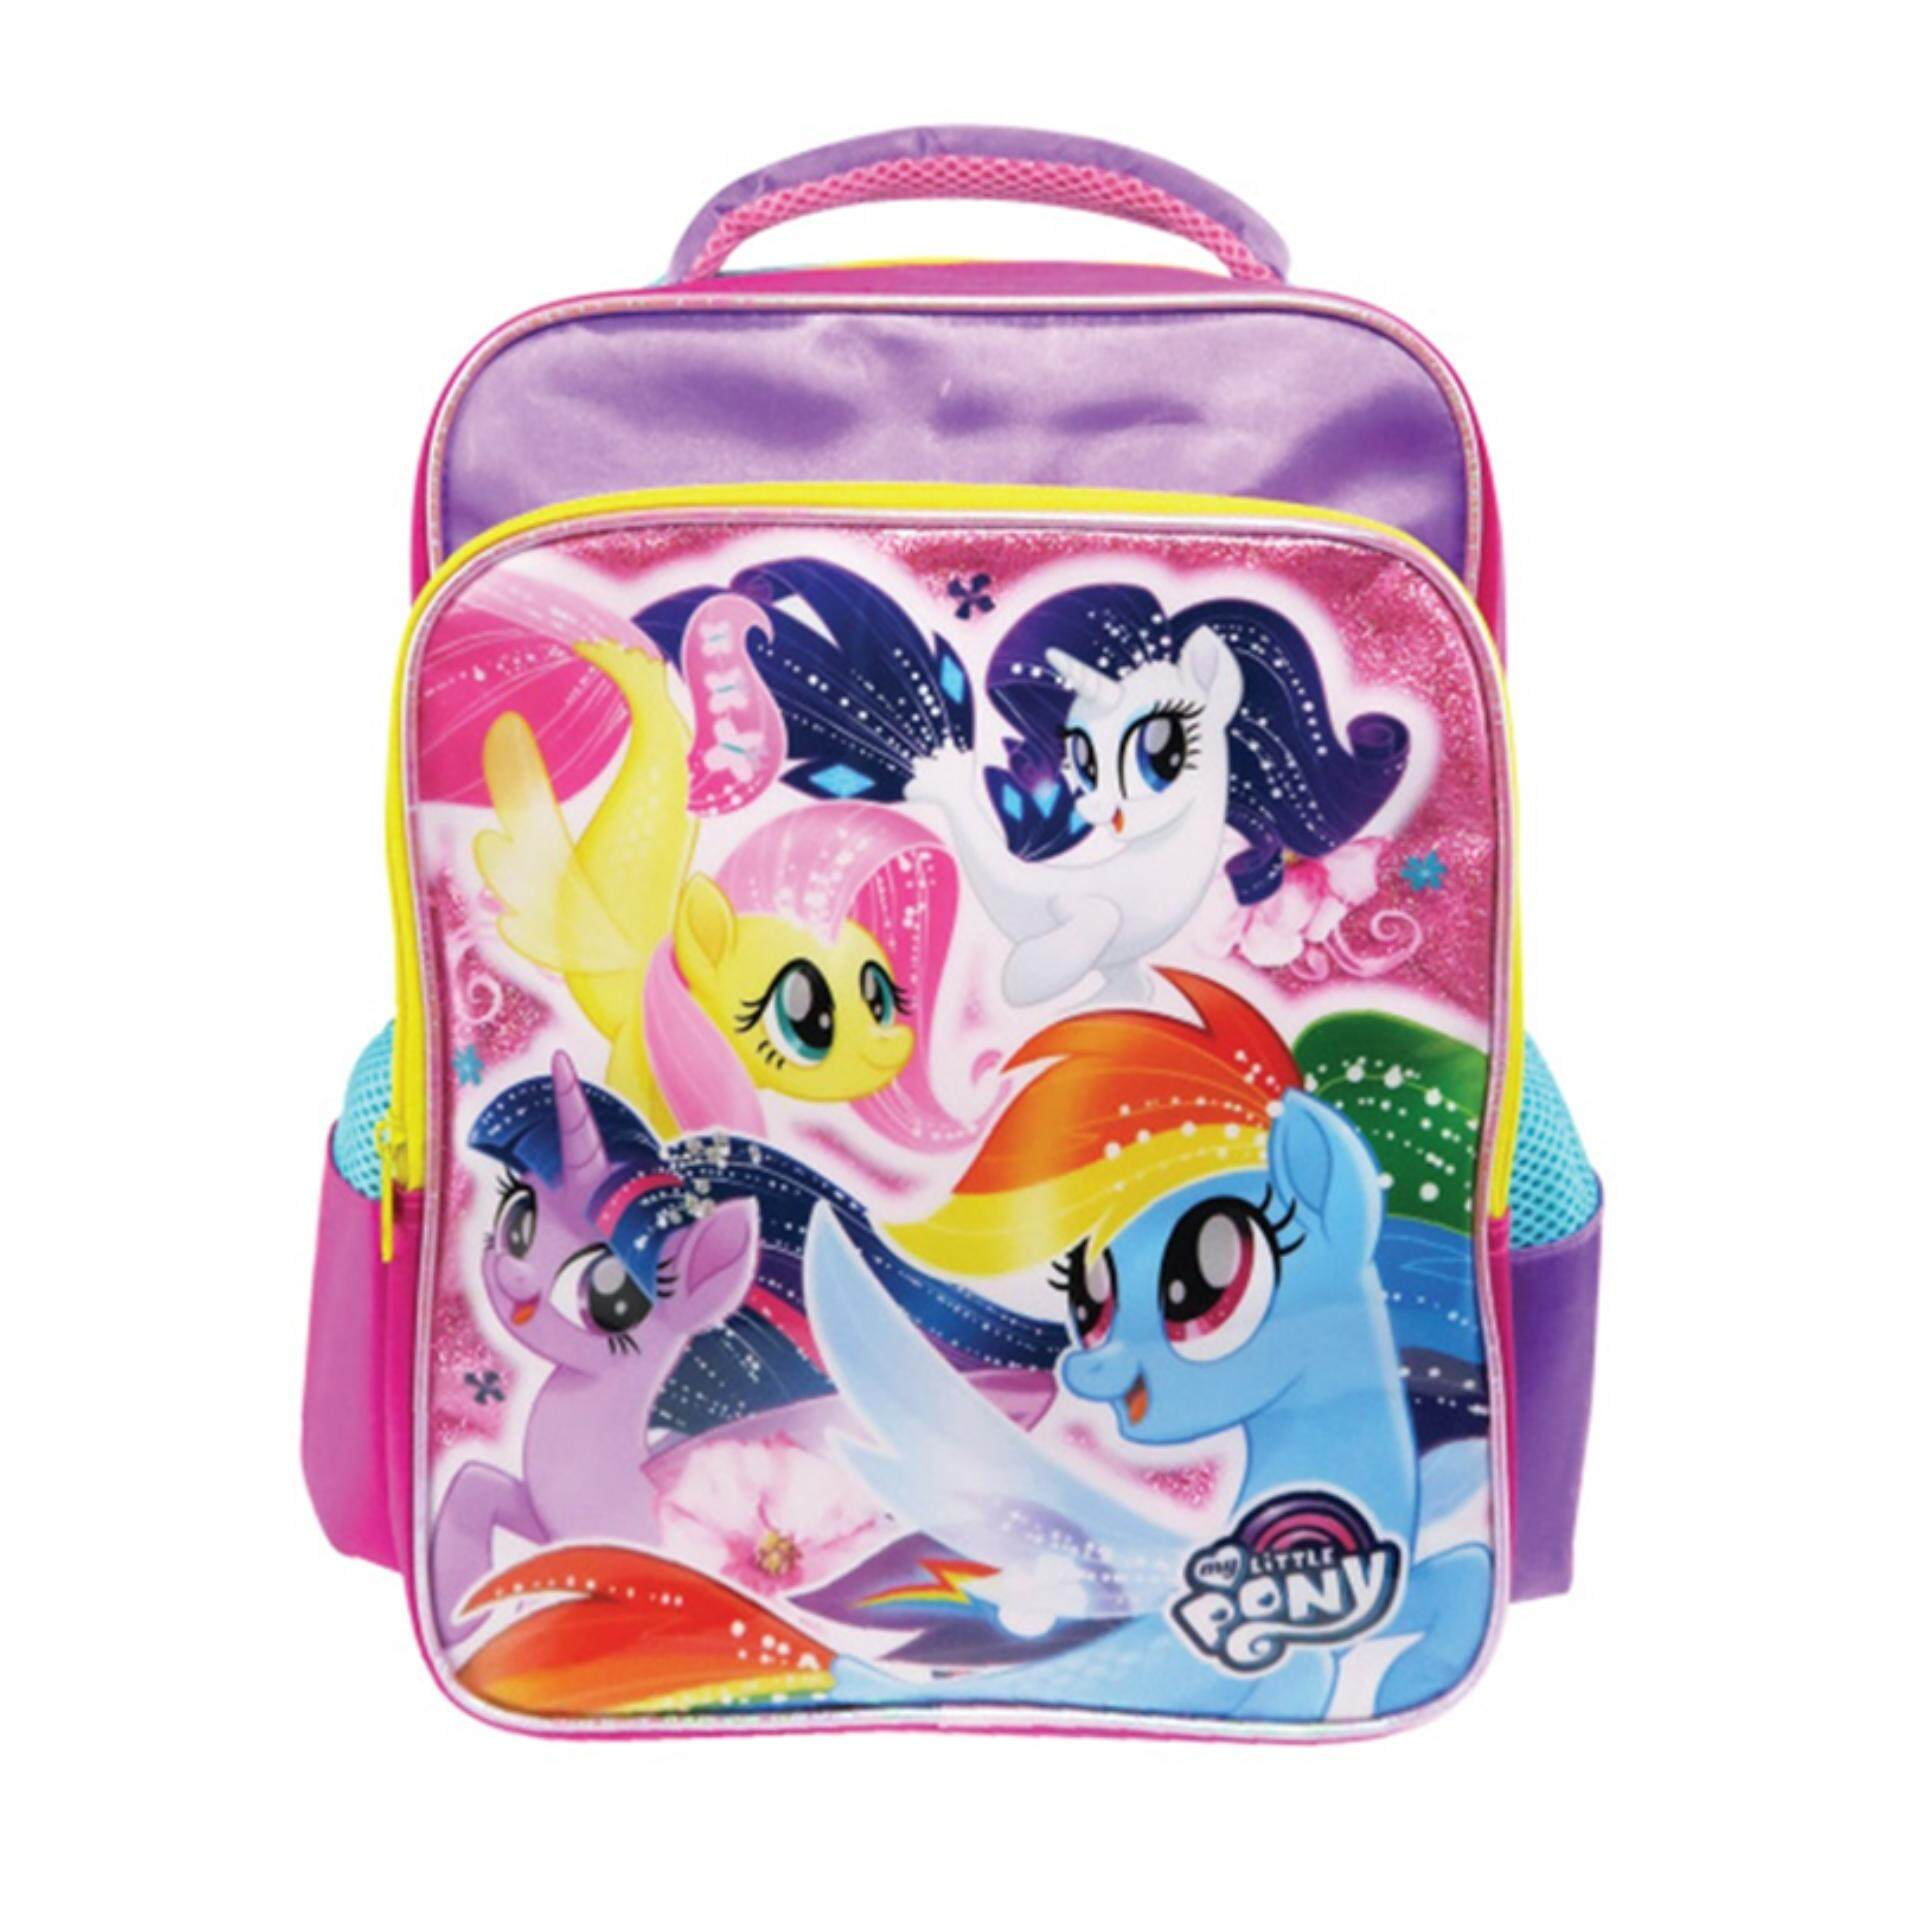 7a4d969f7d90 My Little Pony Backpack Pre School Bag - Purple Colour